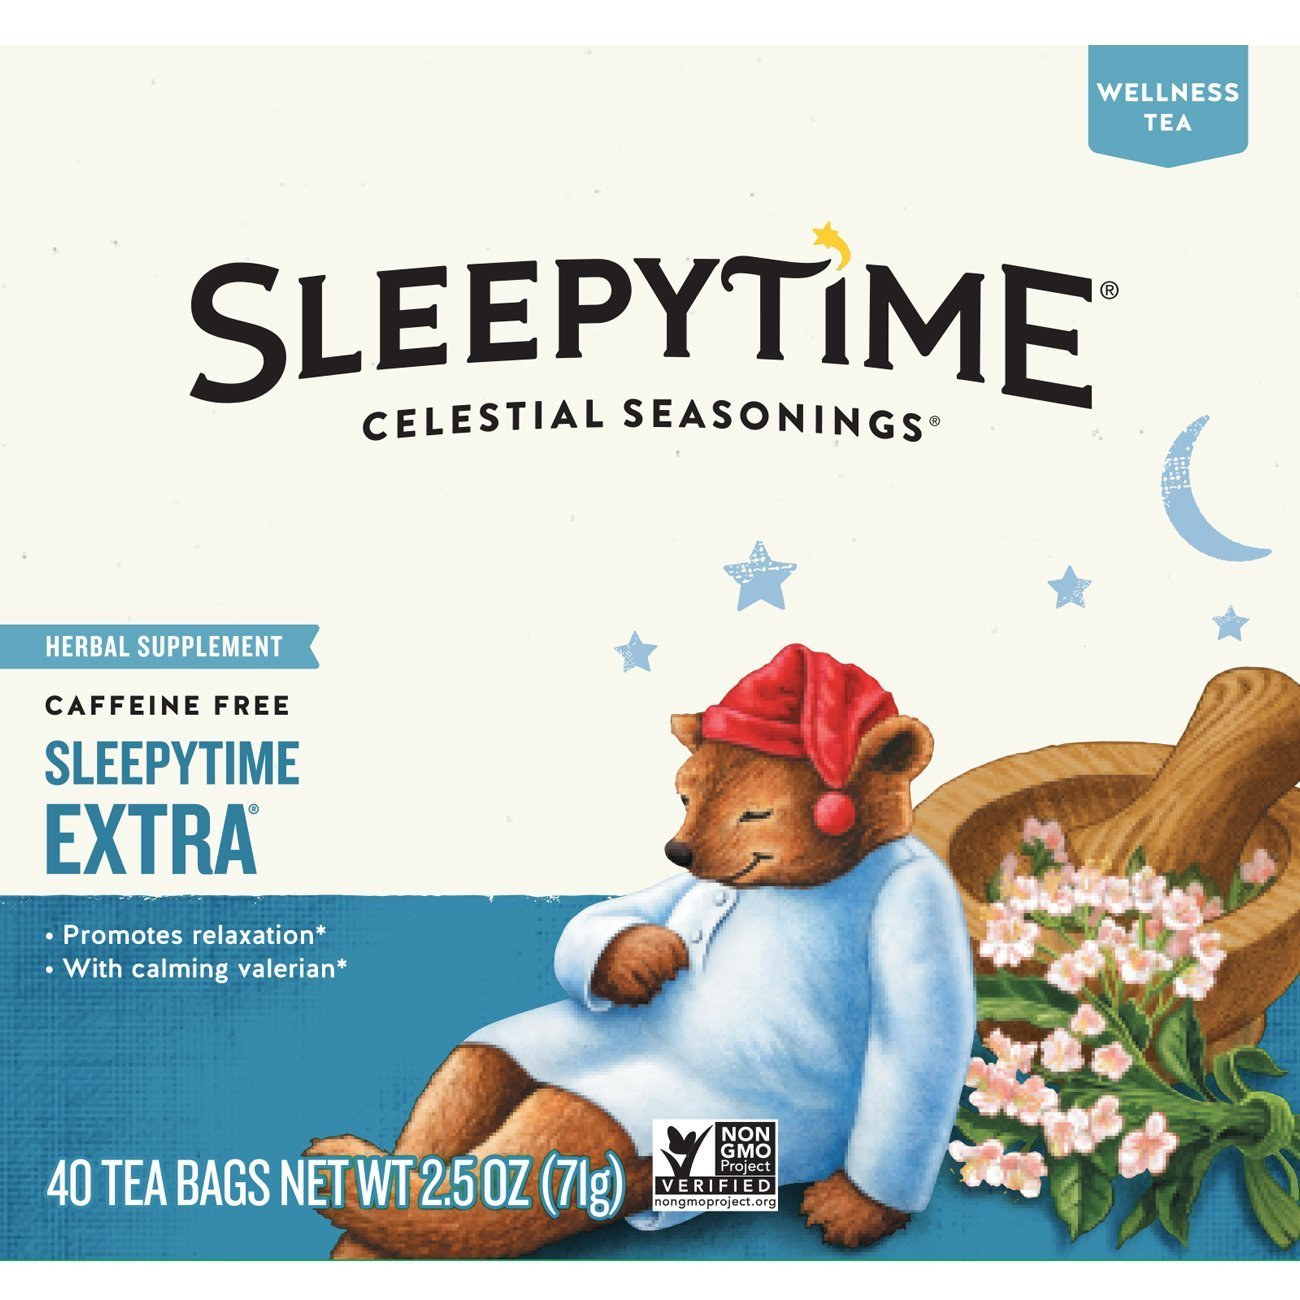 Celestial Seasonings Wellness Tea, Sleepytime Extra, 40 Count (Pack of 6) by Celestial Seasonings (Image #1)